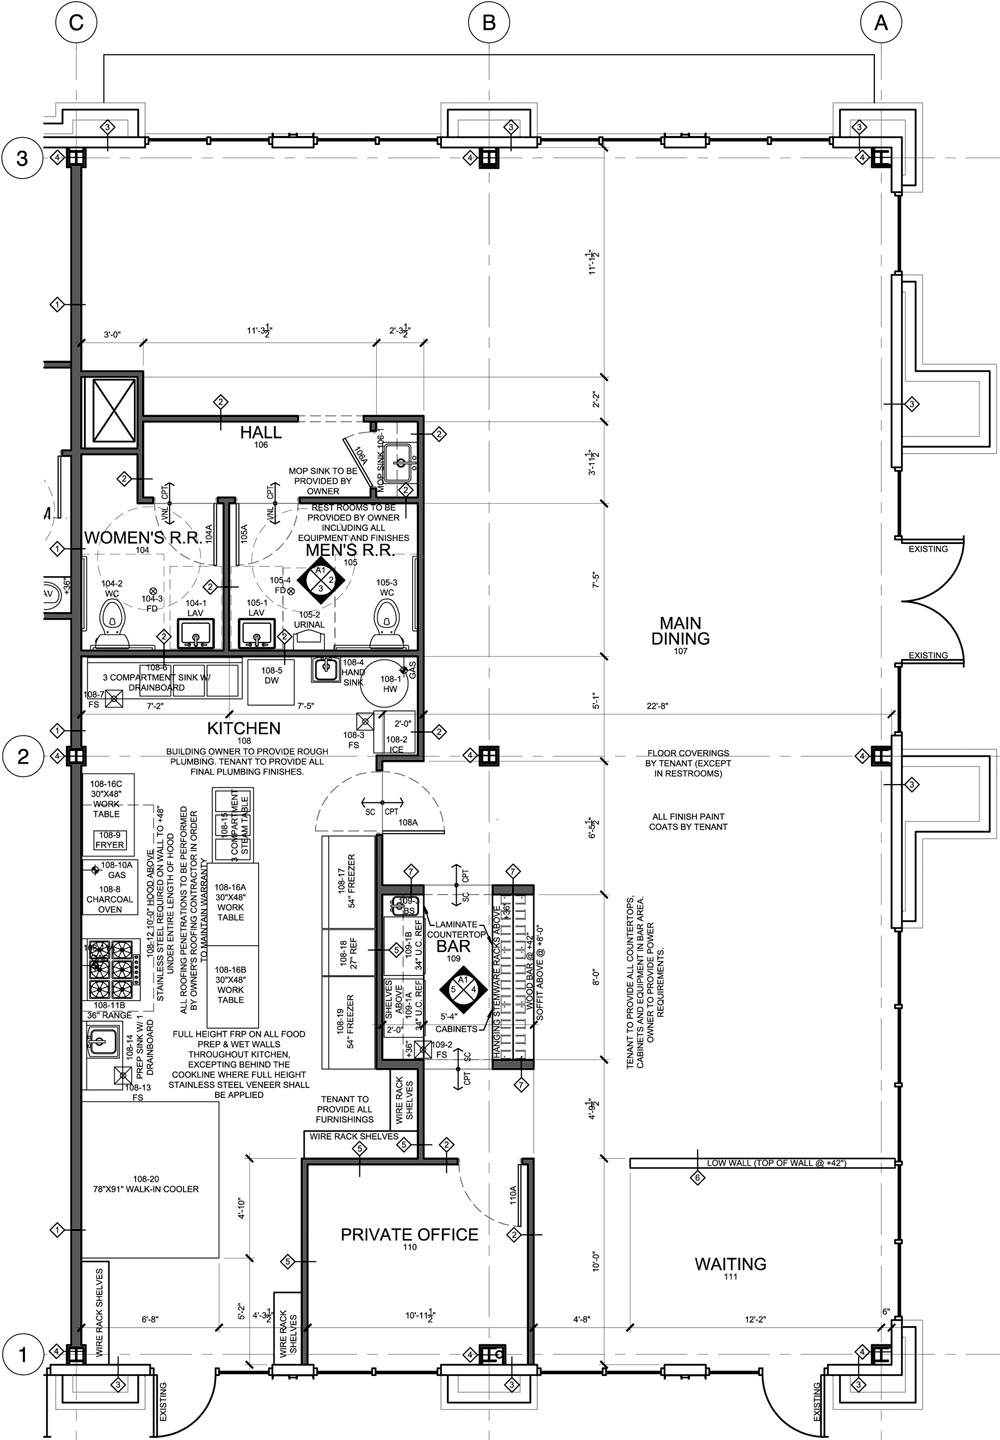 Restaurant Floor Plan for Tenant Improvement – Taste of Himalaya